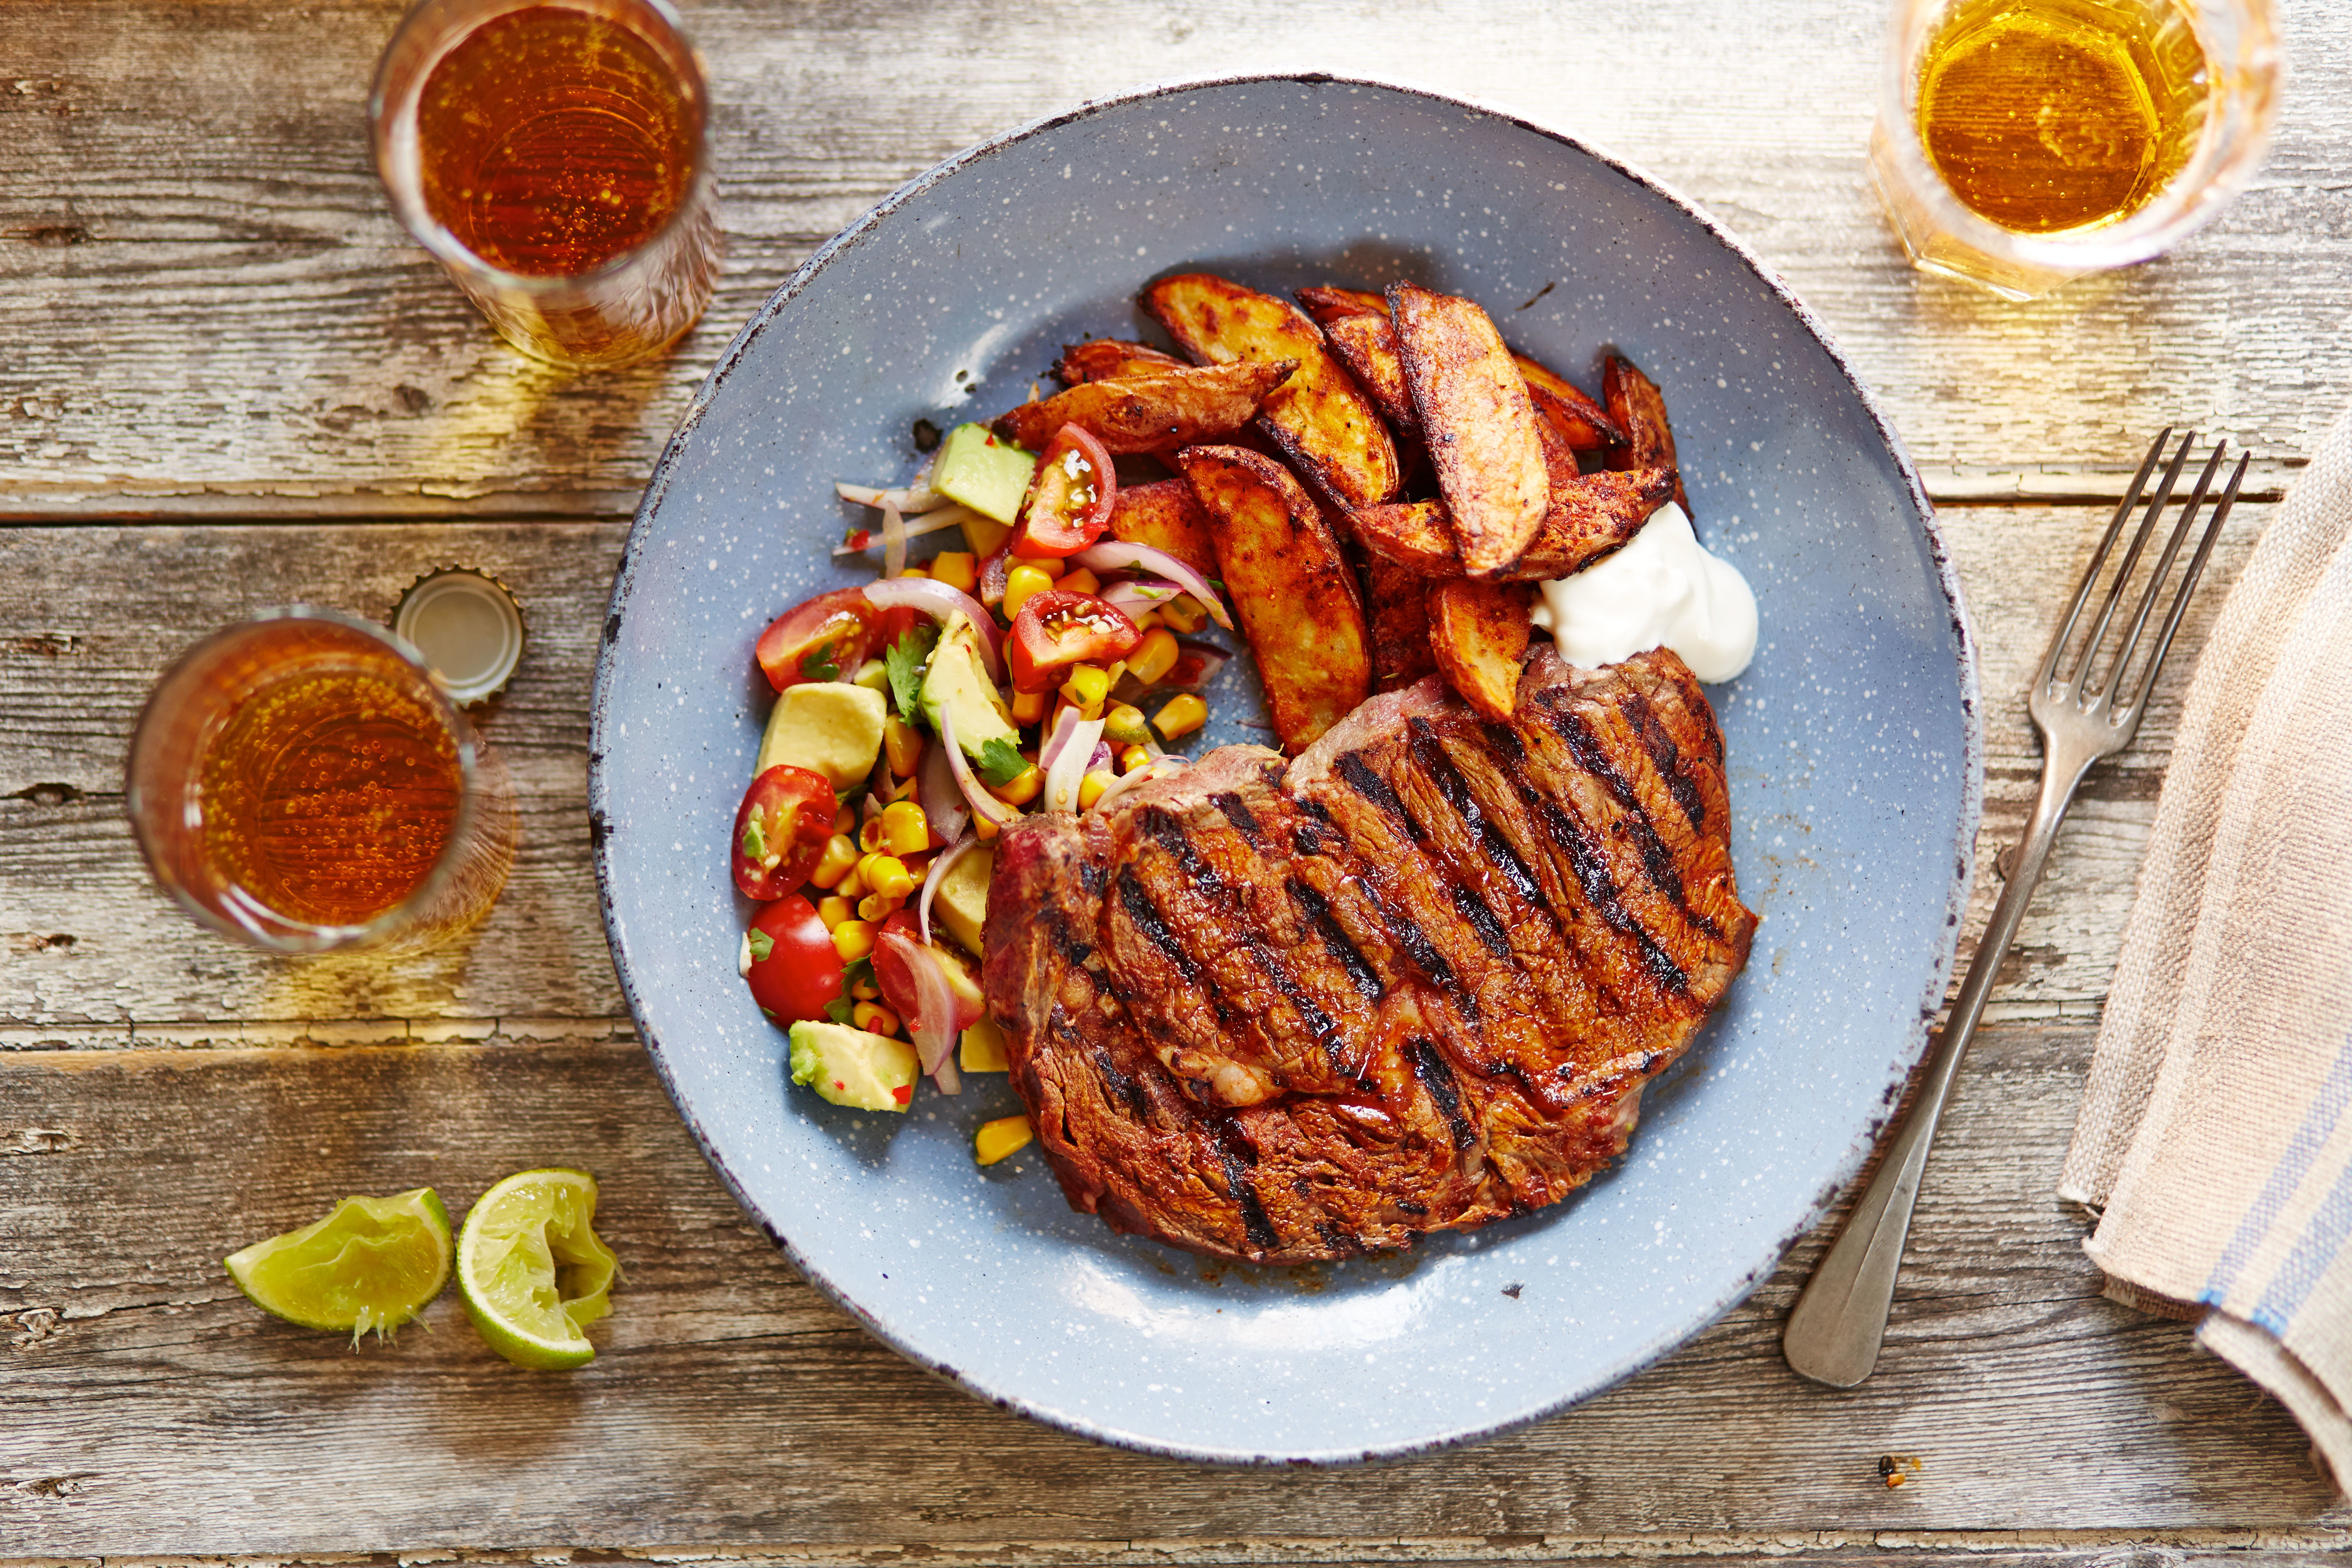 Chipotle steak with Mexican salsa  recipe